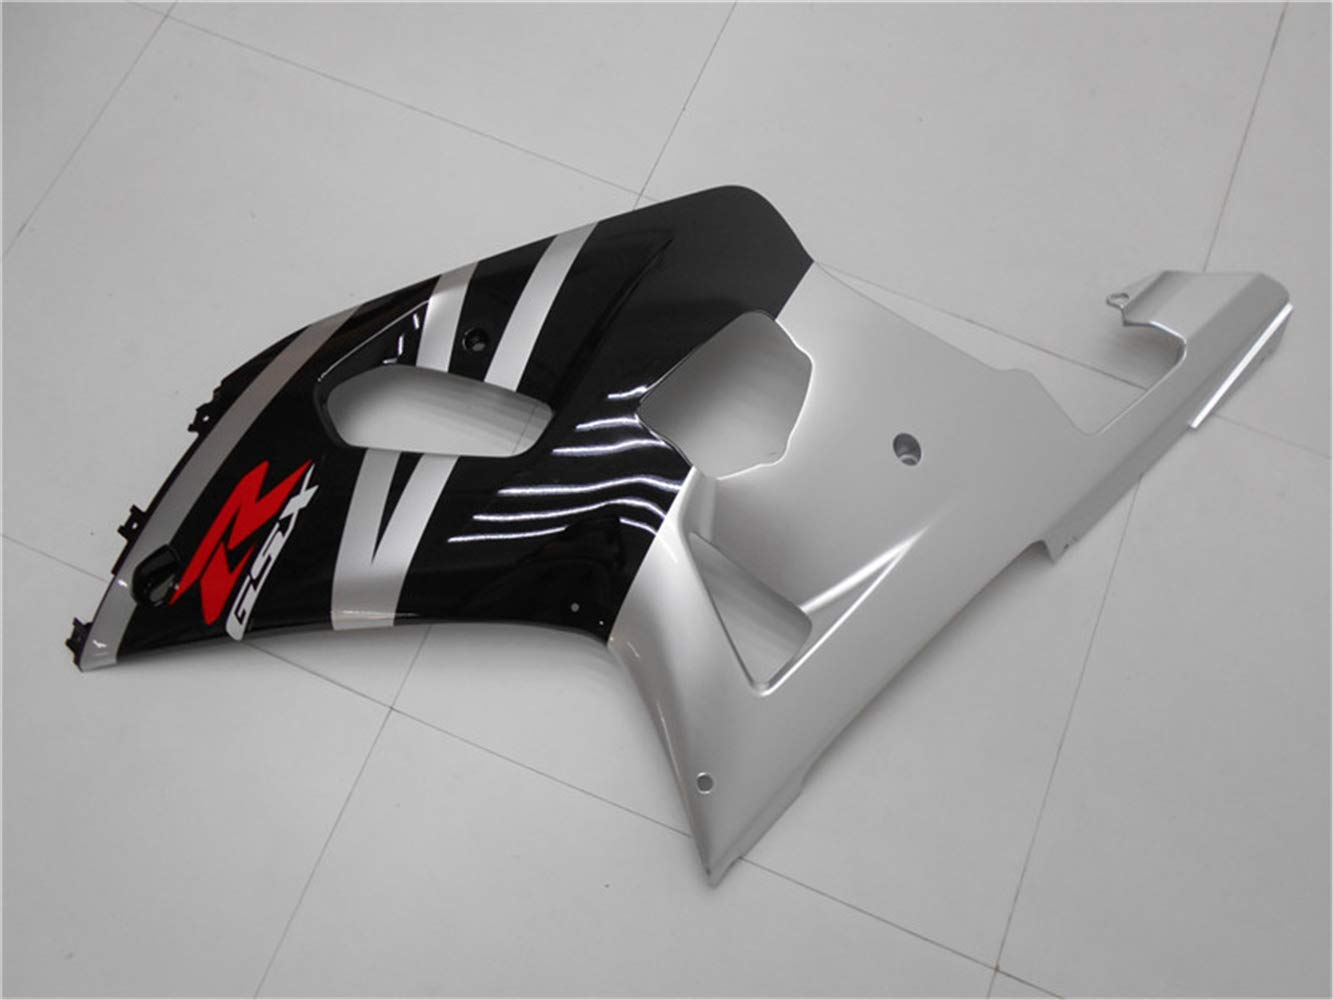 New Blue White Fairing Fit for SUZUKI 2001 2002 2003 GSXR 600 750 Injection Mold ABS Plastics Aftermarket Bodywork Bodyframe GSX-R 600//750 01 02 03